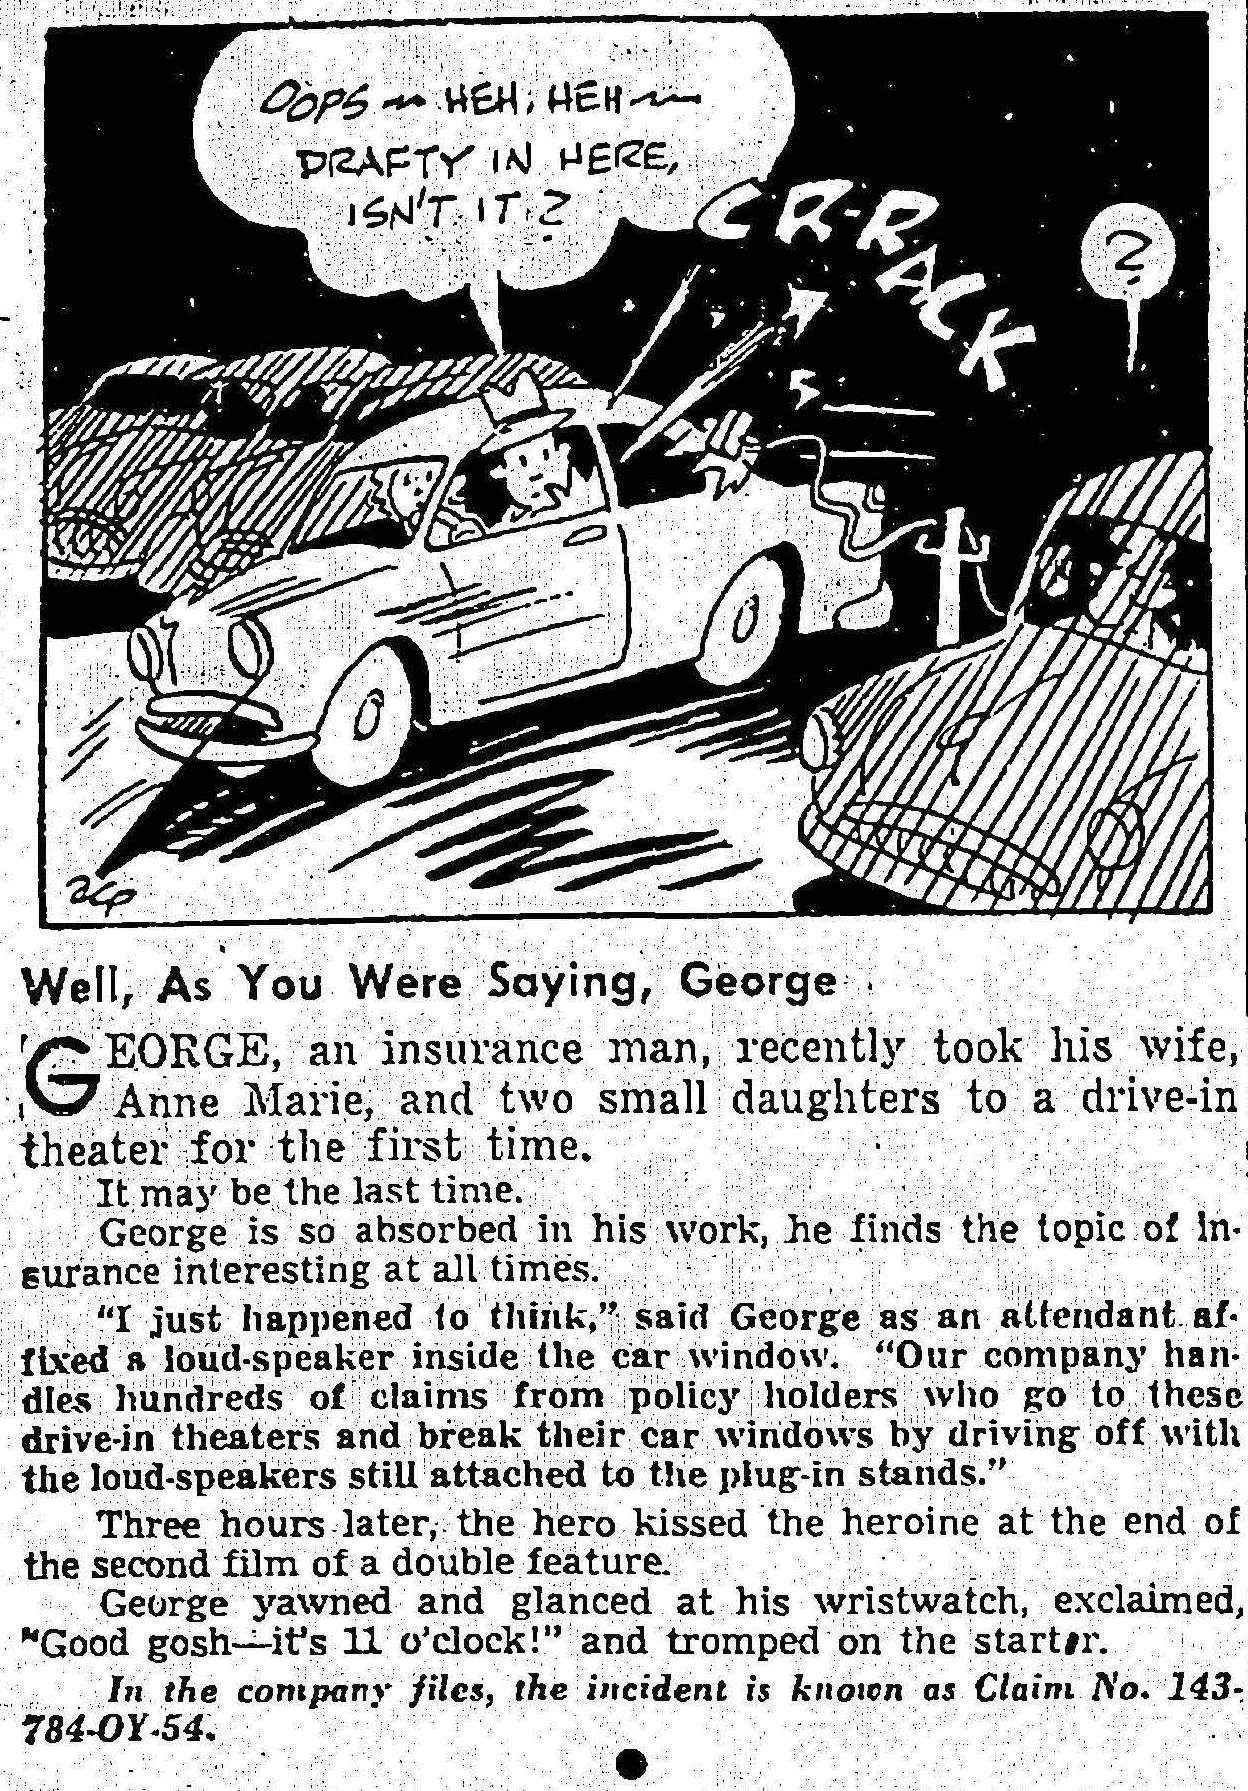 Seattle Times (21 Sept 1954)